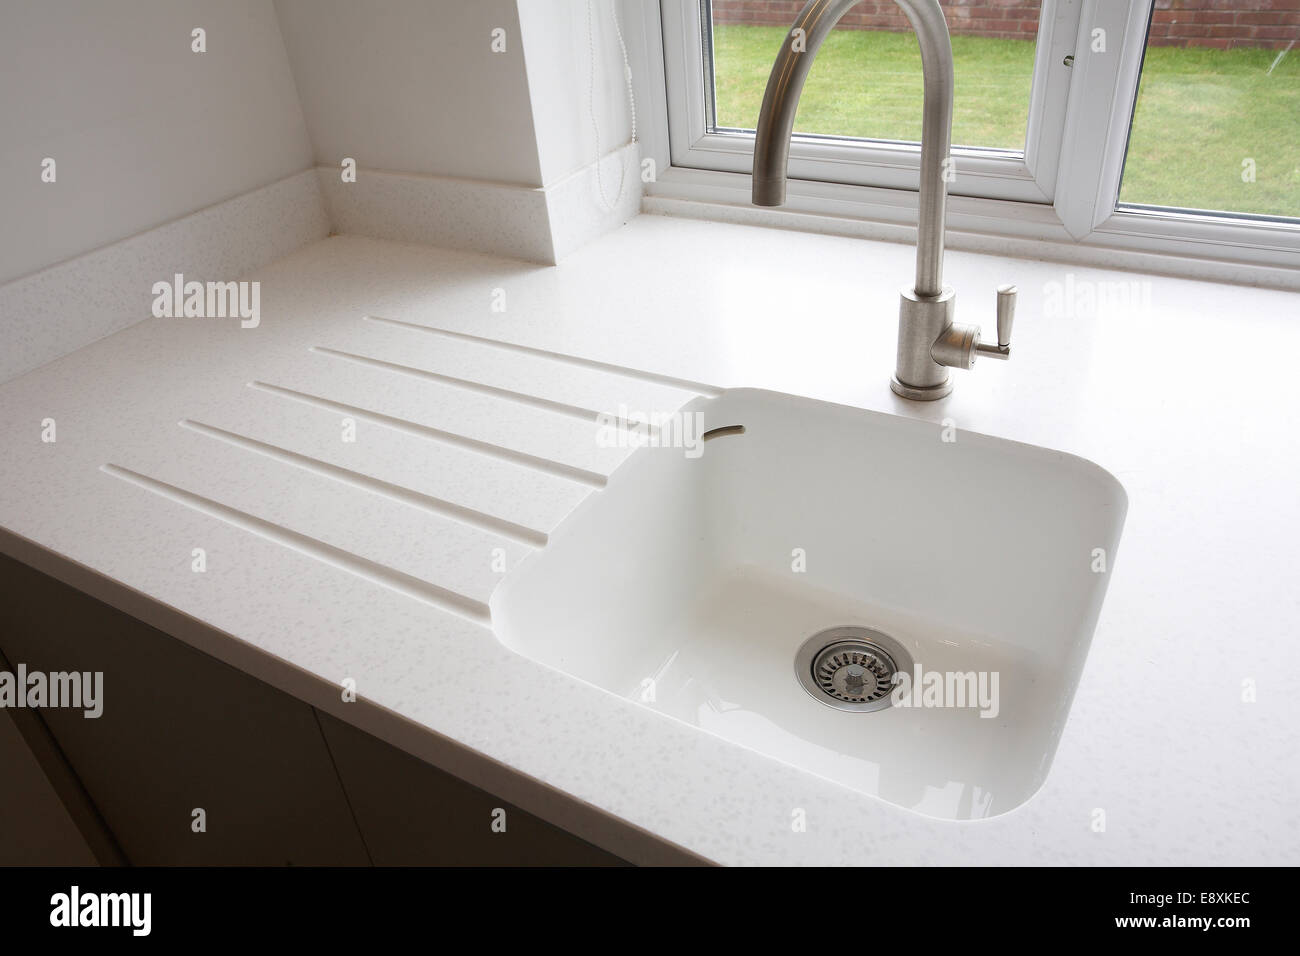 White Marble Sink Stock Photos & White Marble Sink Stock Images - Alamy